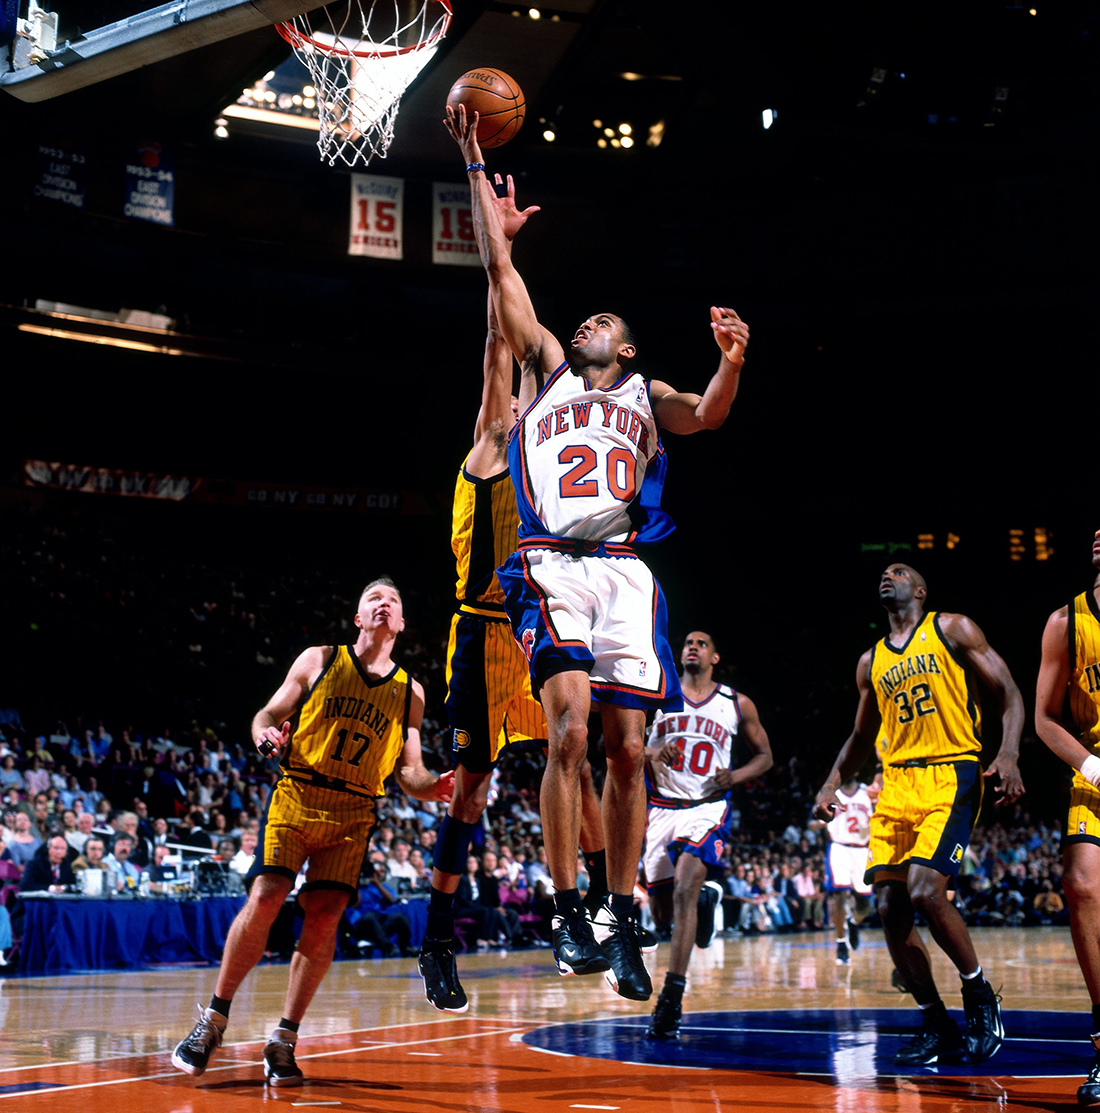 Copyright 1999 NBAE (Photo by Nathaniel S. Butler/NBAE via Getty Images)